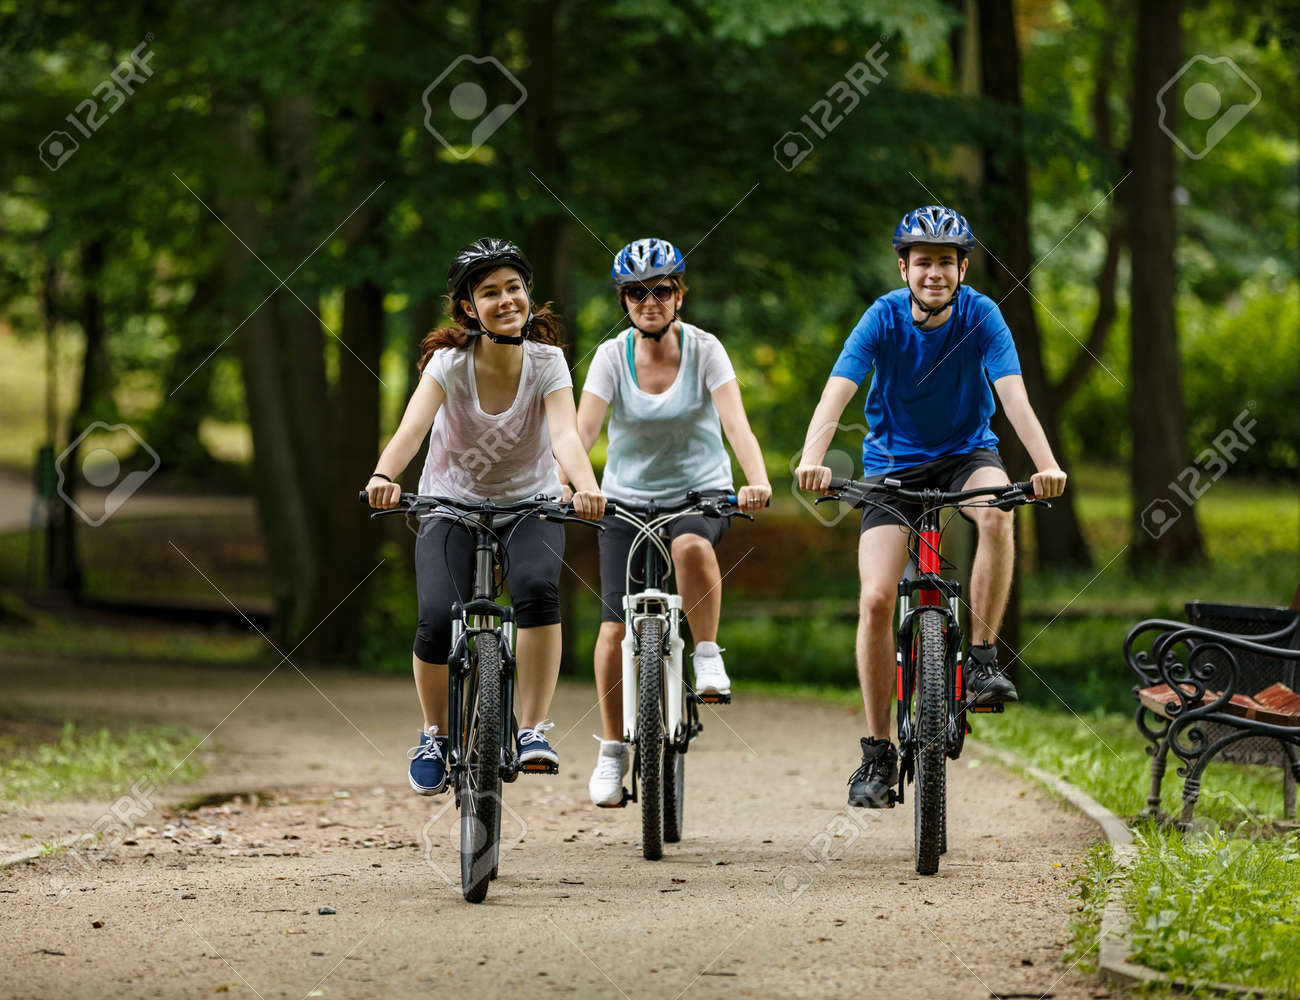 Healthy lifestyle - people riding bicycles in city park - 120572866